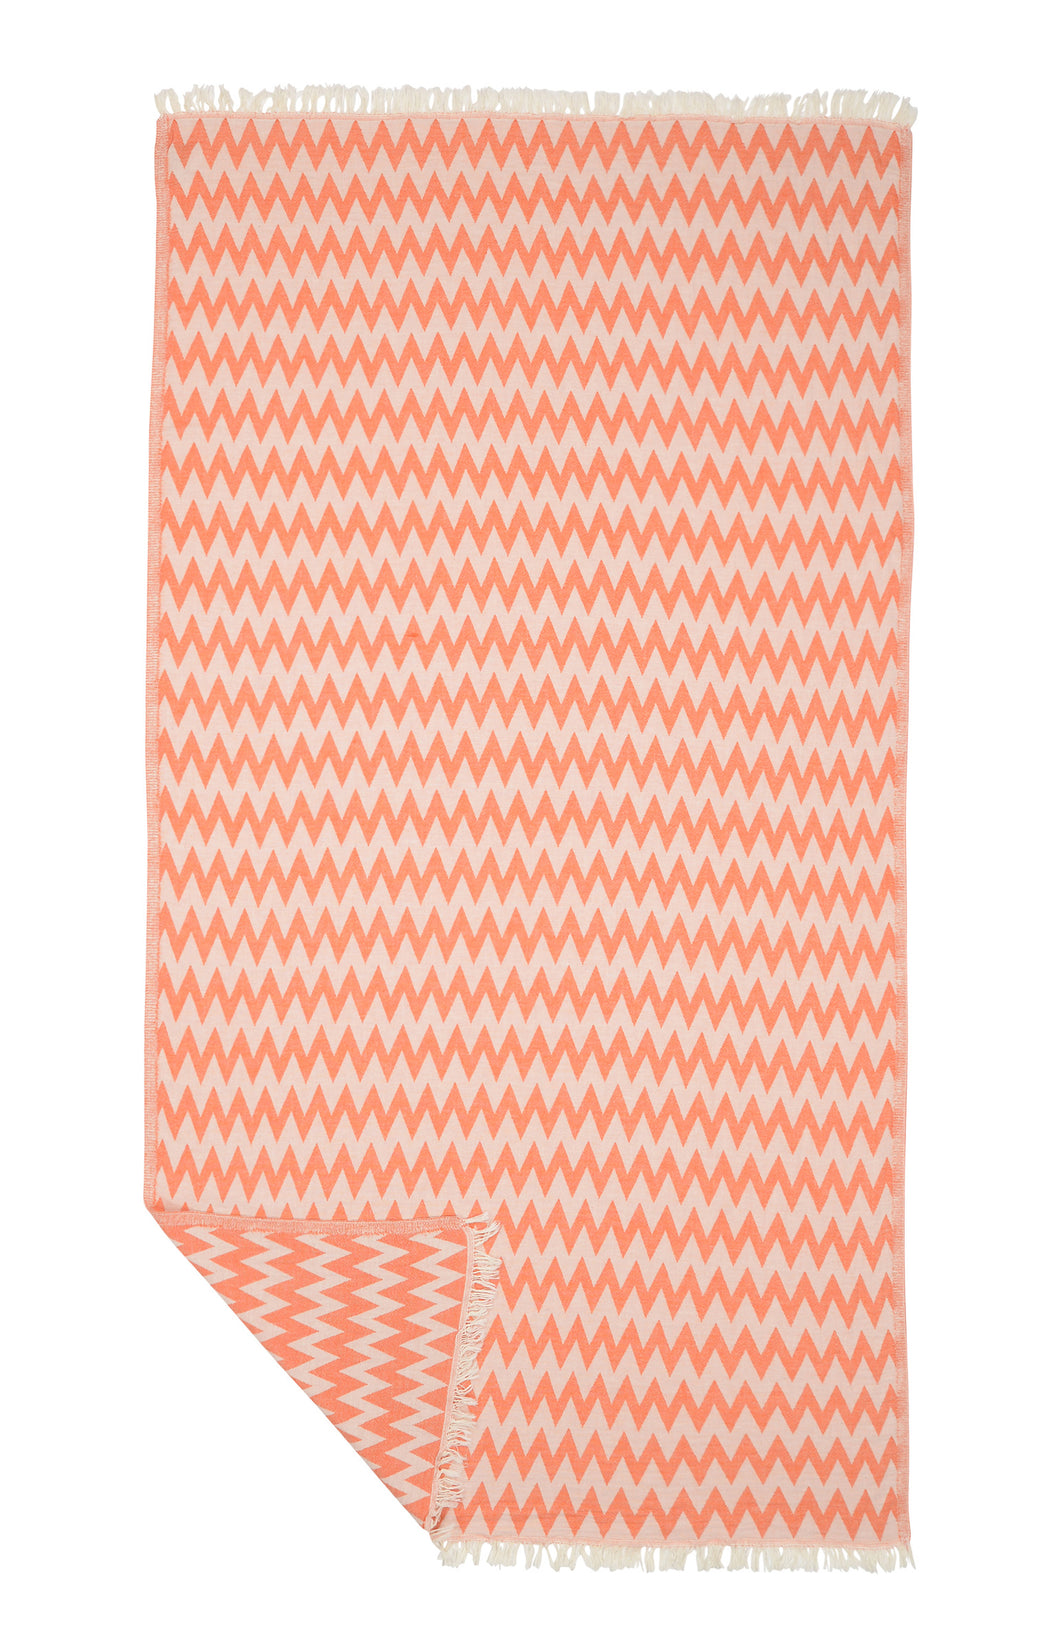 Aztec Zig Zag Authentic Turkish Towel - Orange